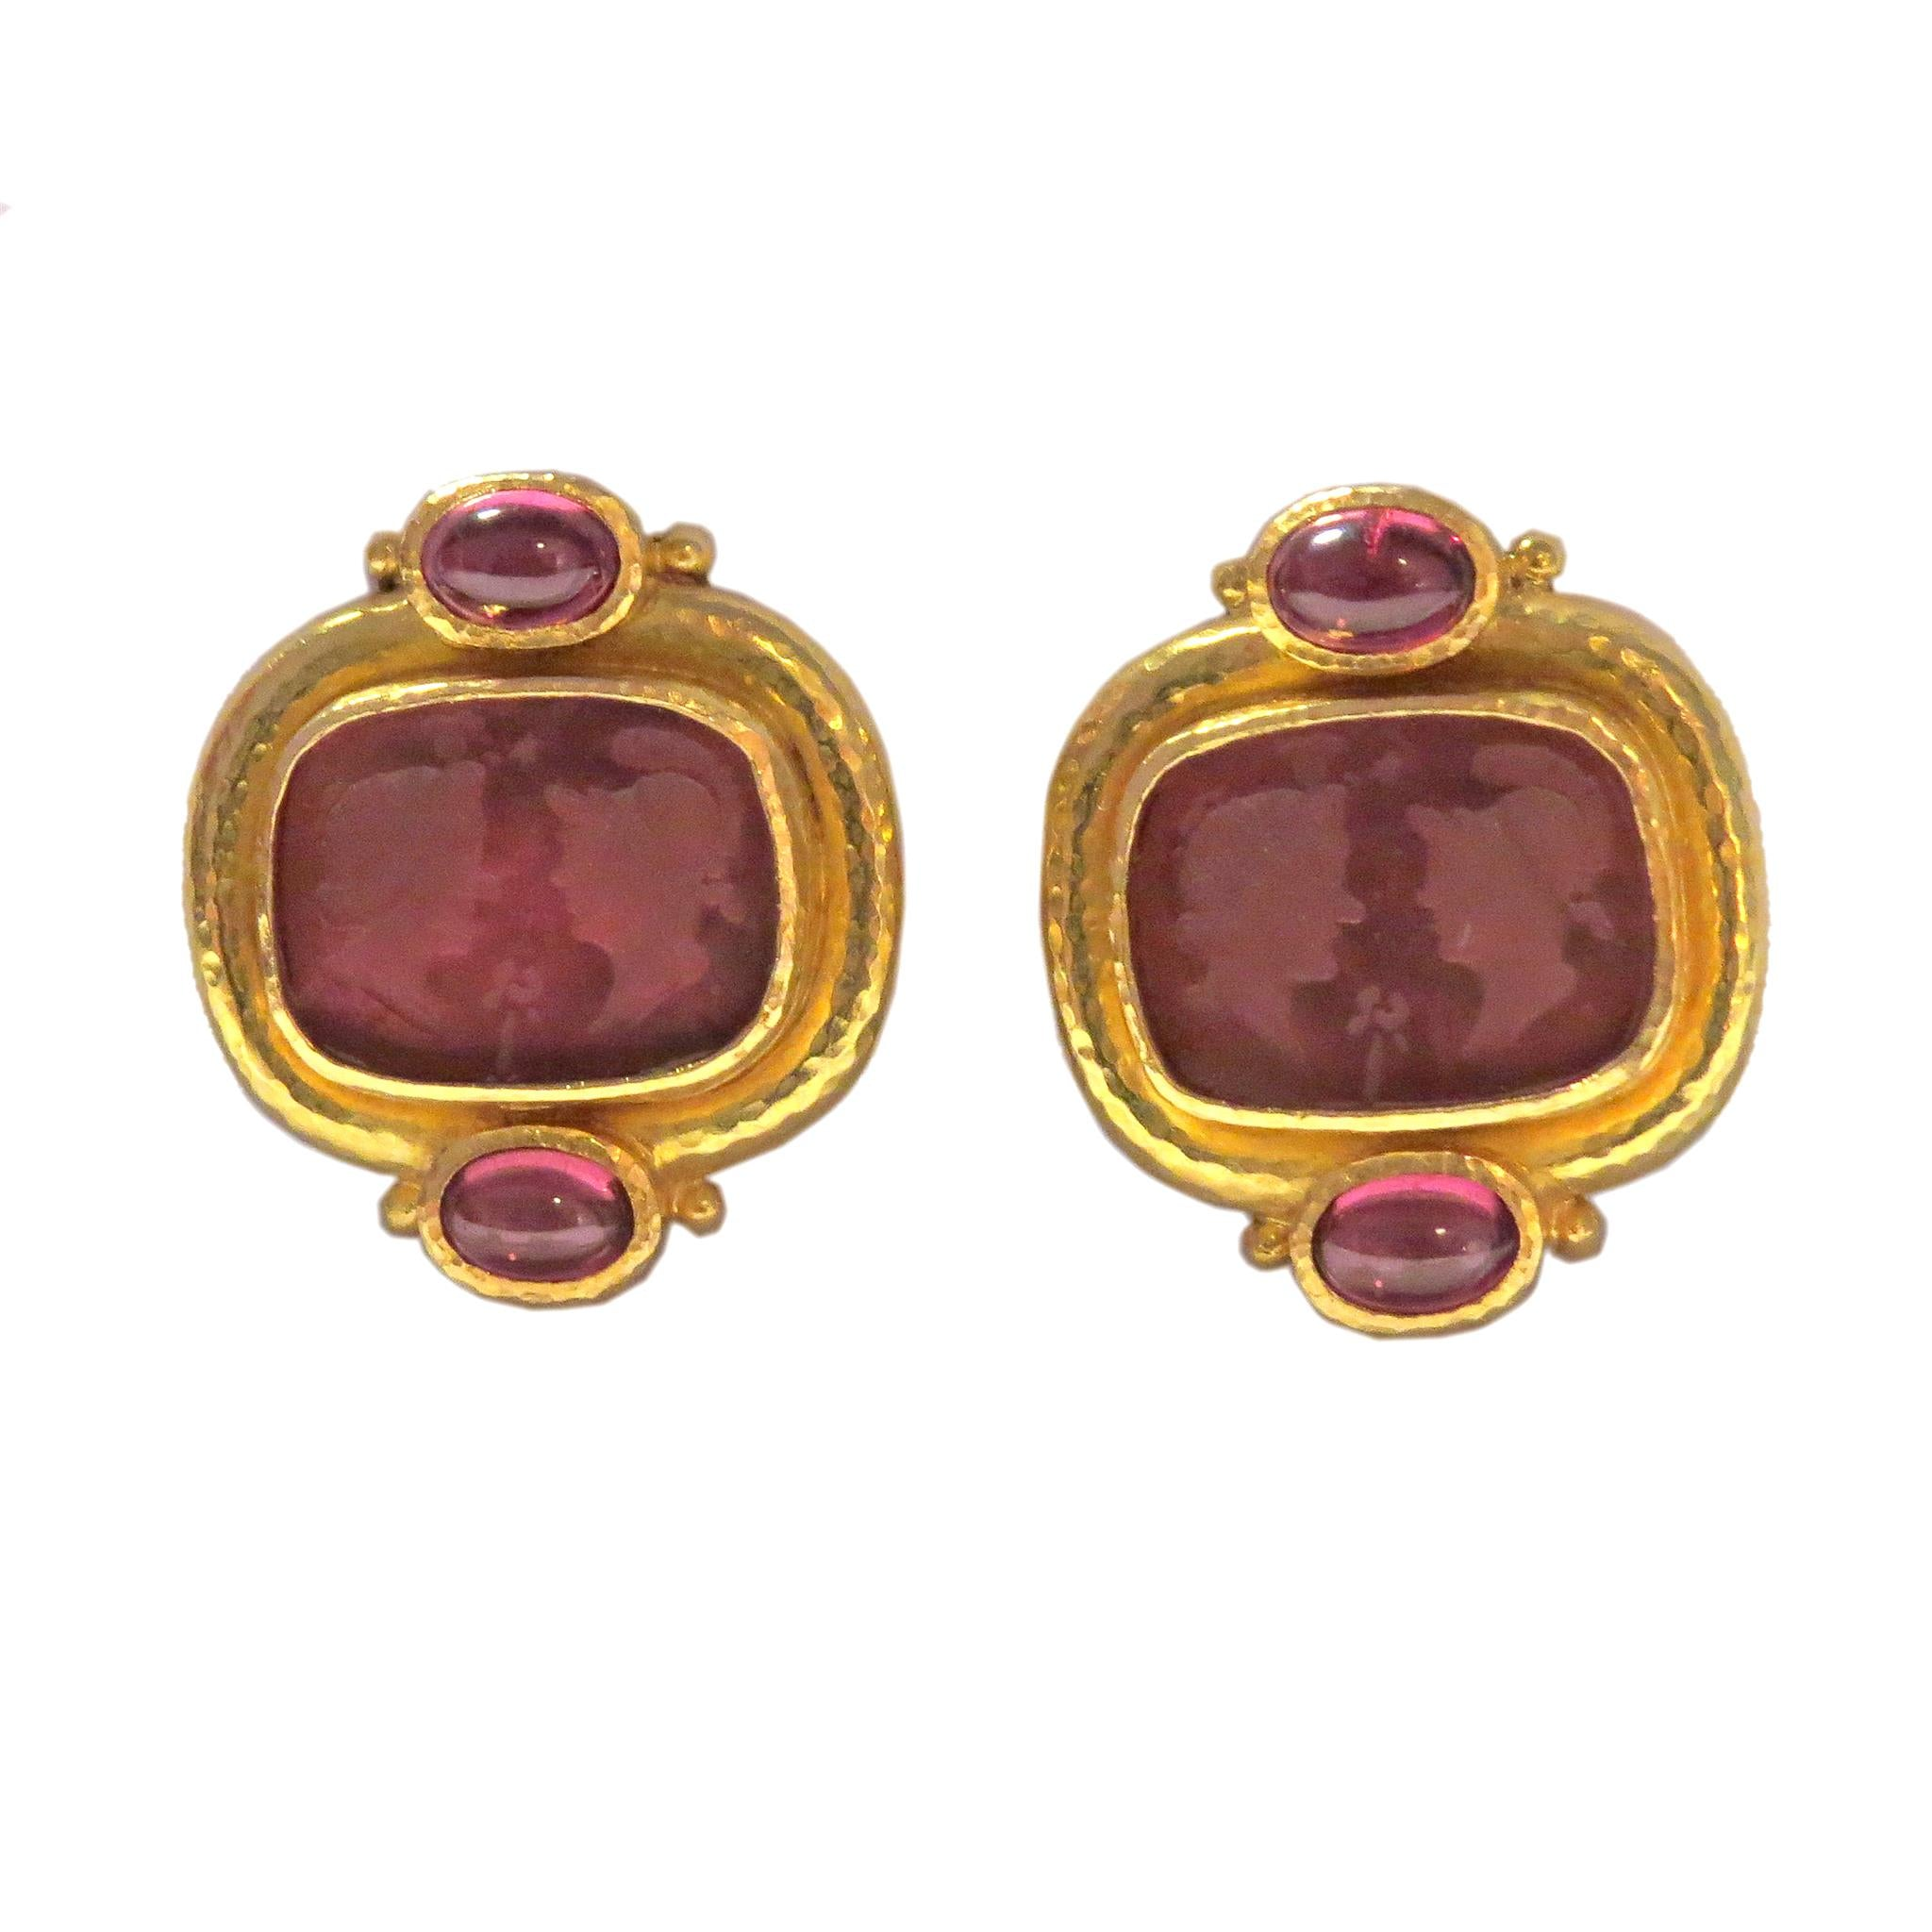 Elizabeth Locke Gold Venetian Glass Intaglio Tourmaline Earrings